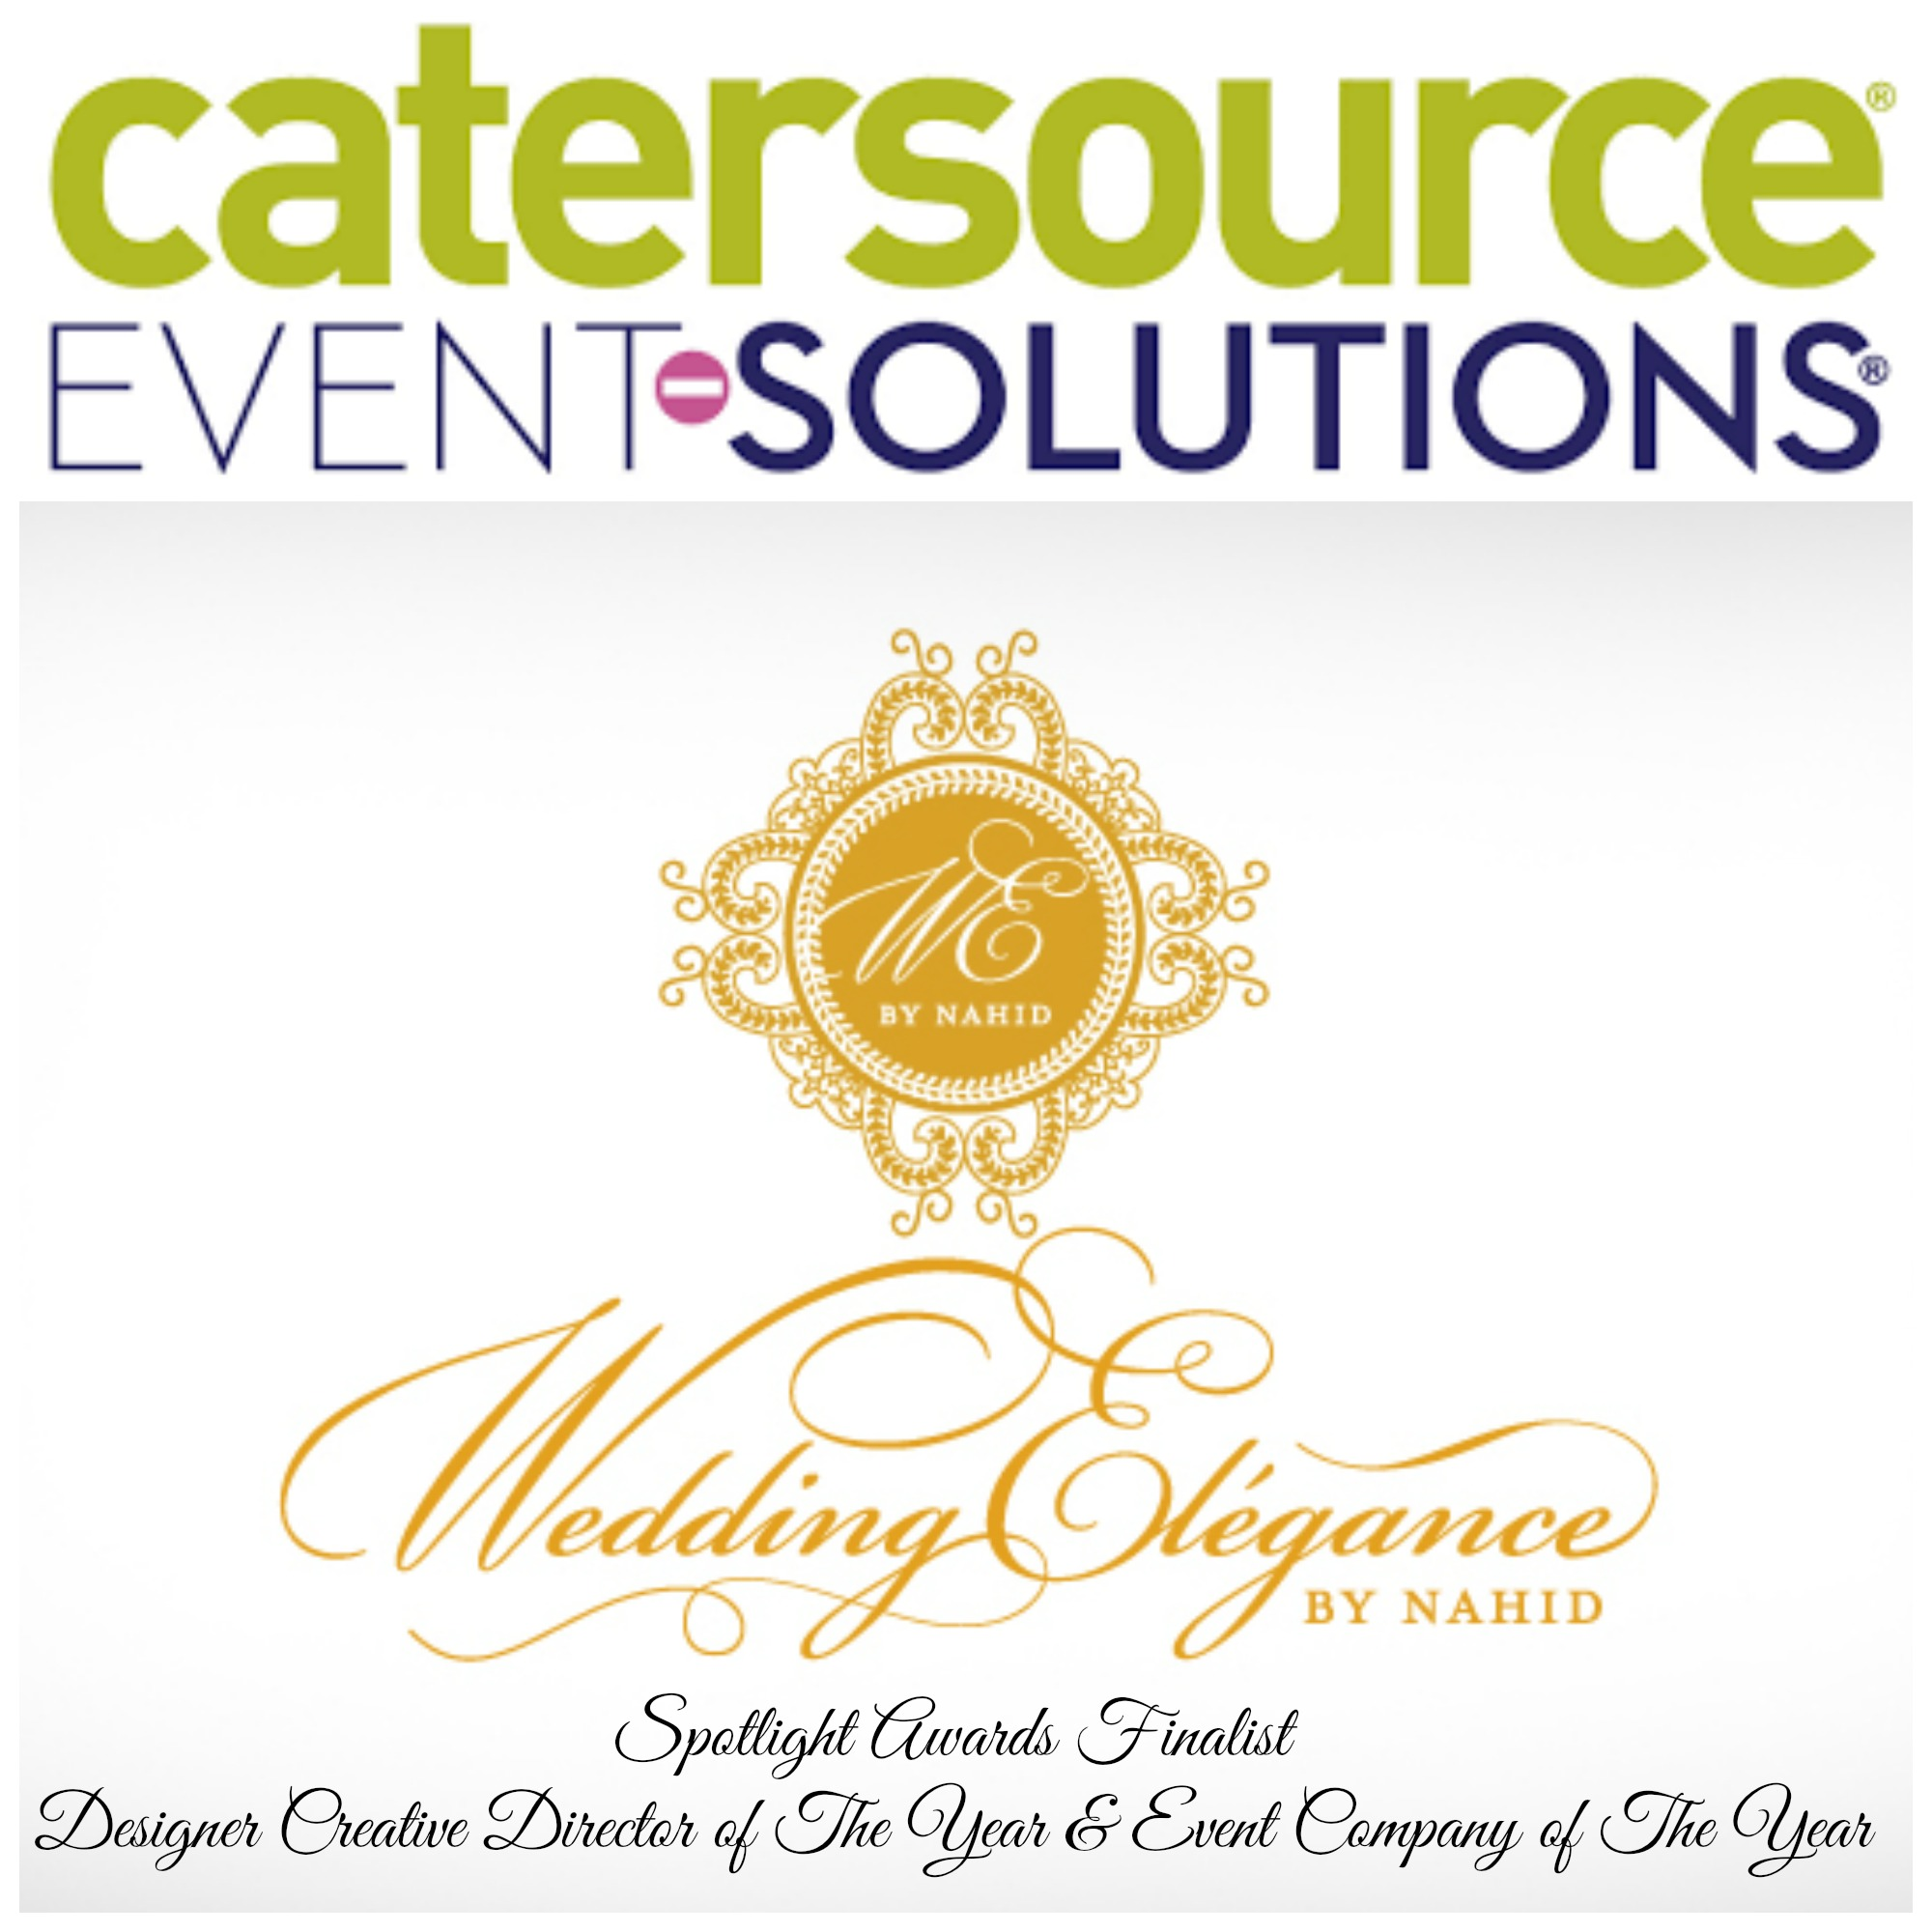 Nahid Farhoud is a finalist in the Catersource Event Solutions Spotlight Awards